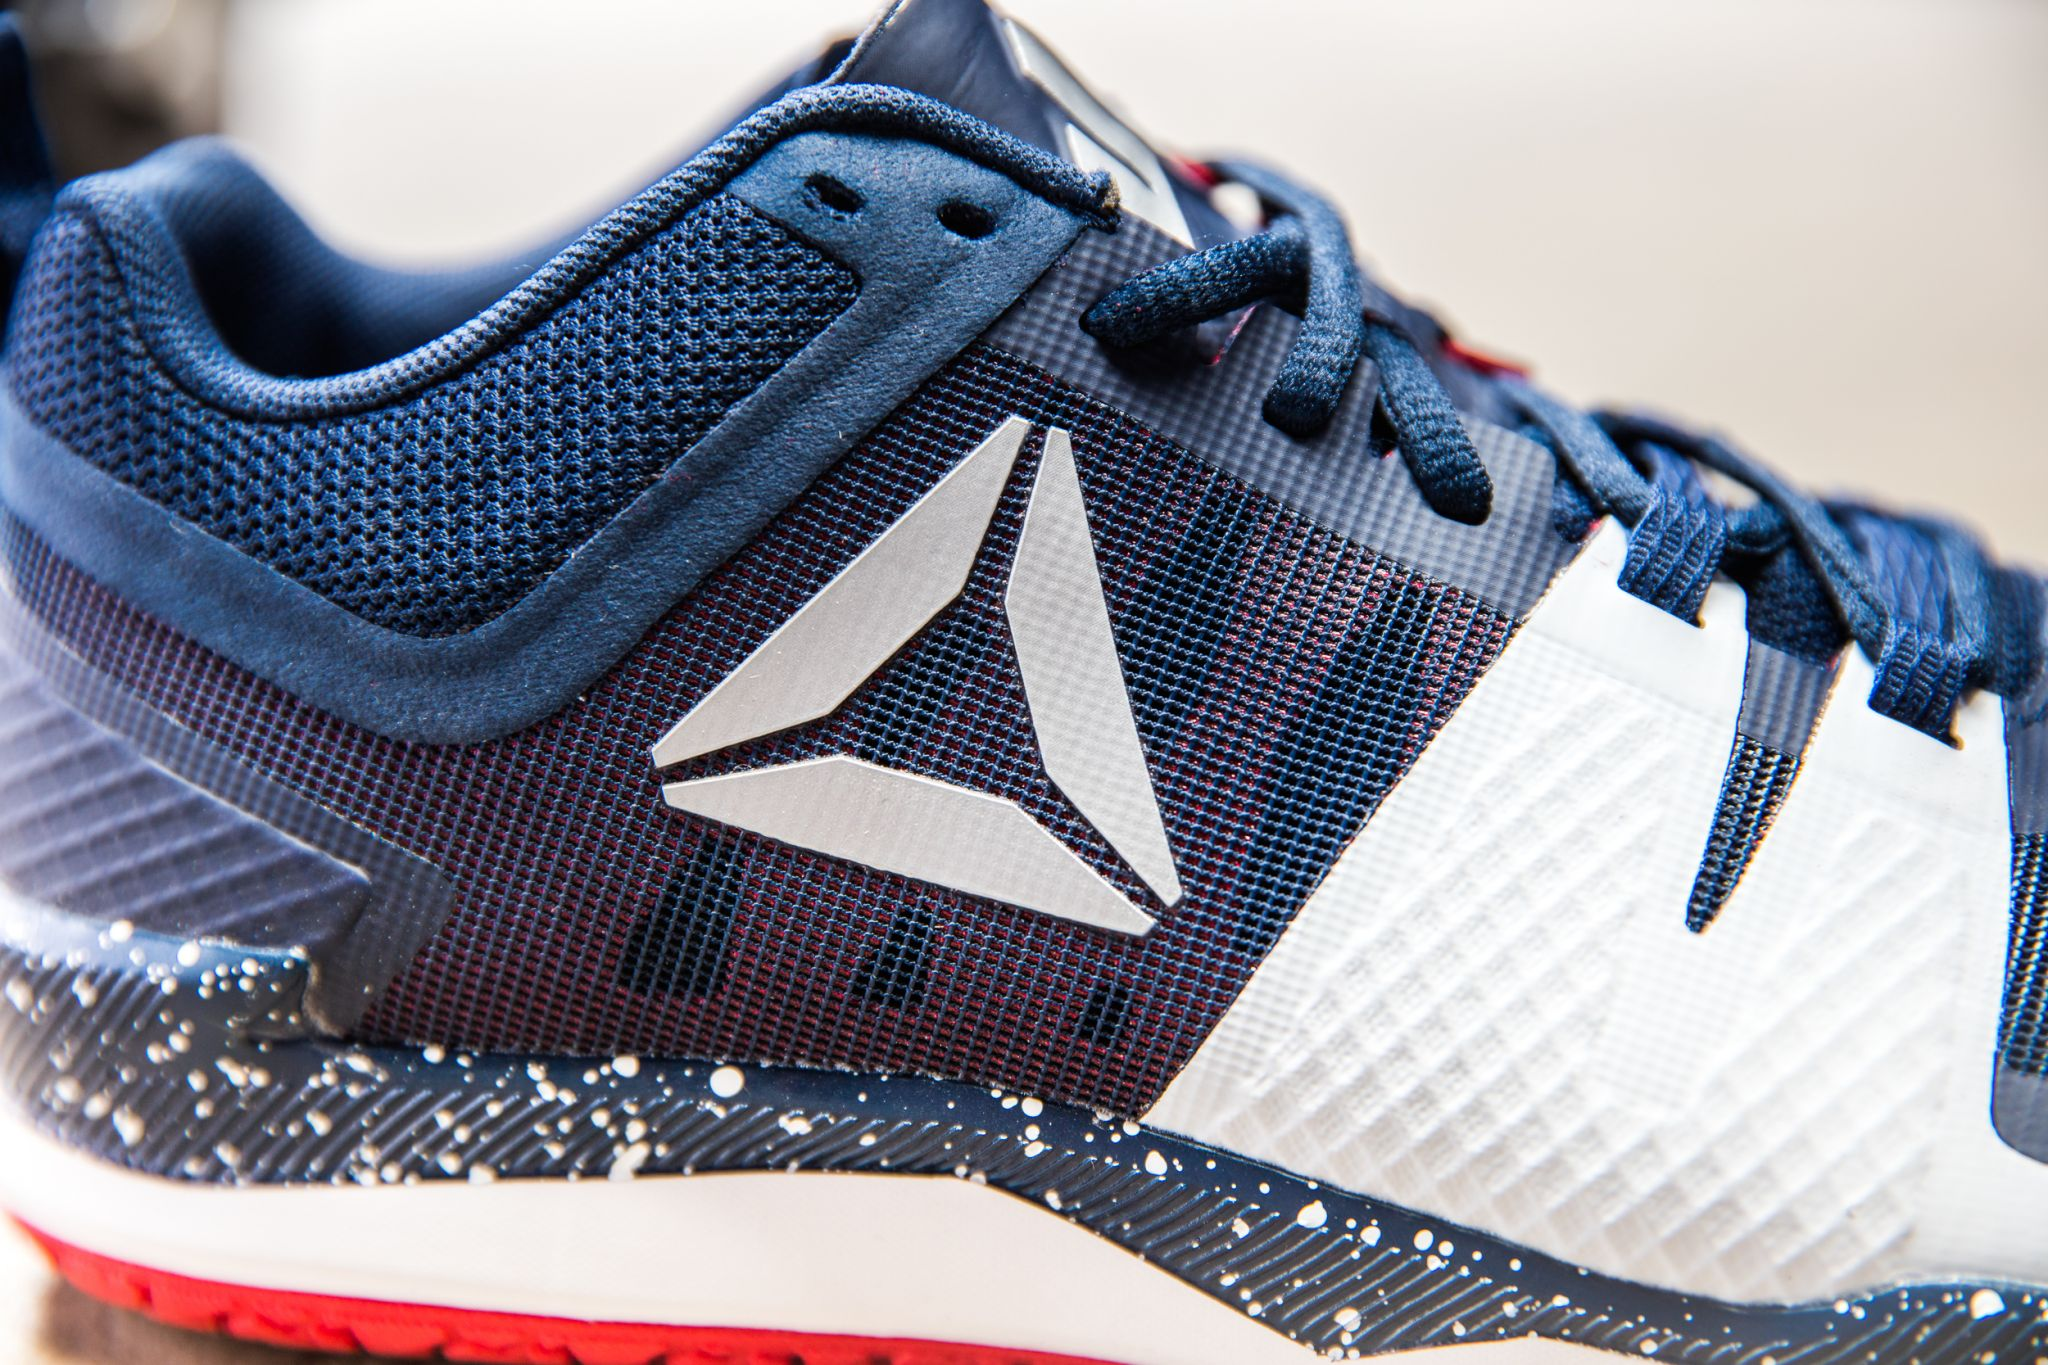 New release of Texans  J.J. Watt s shoes hits stores Friday - Houston  Chronicle bdeece41a